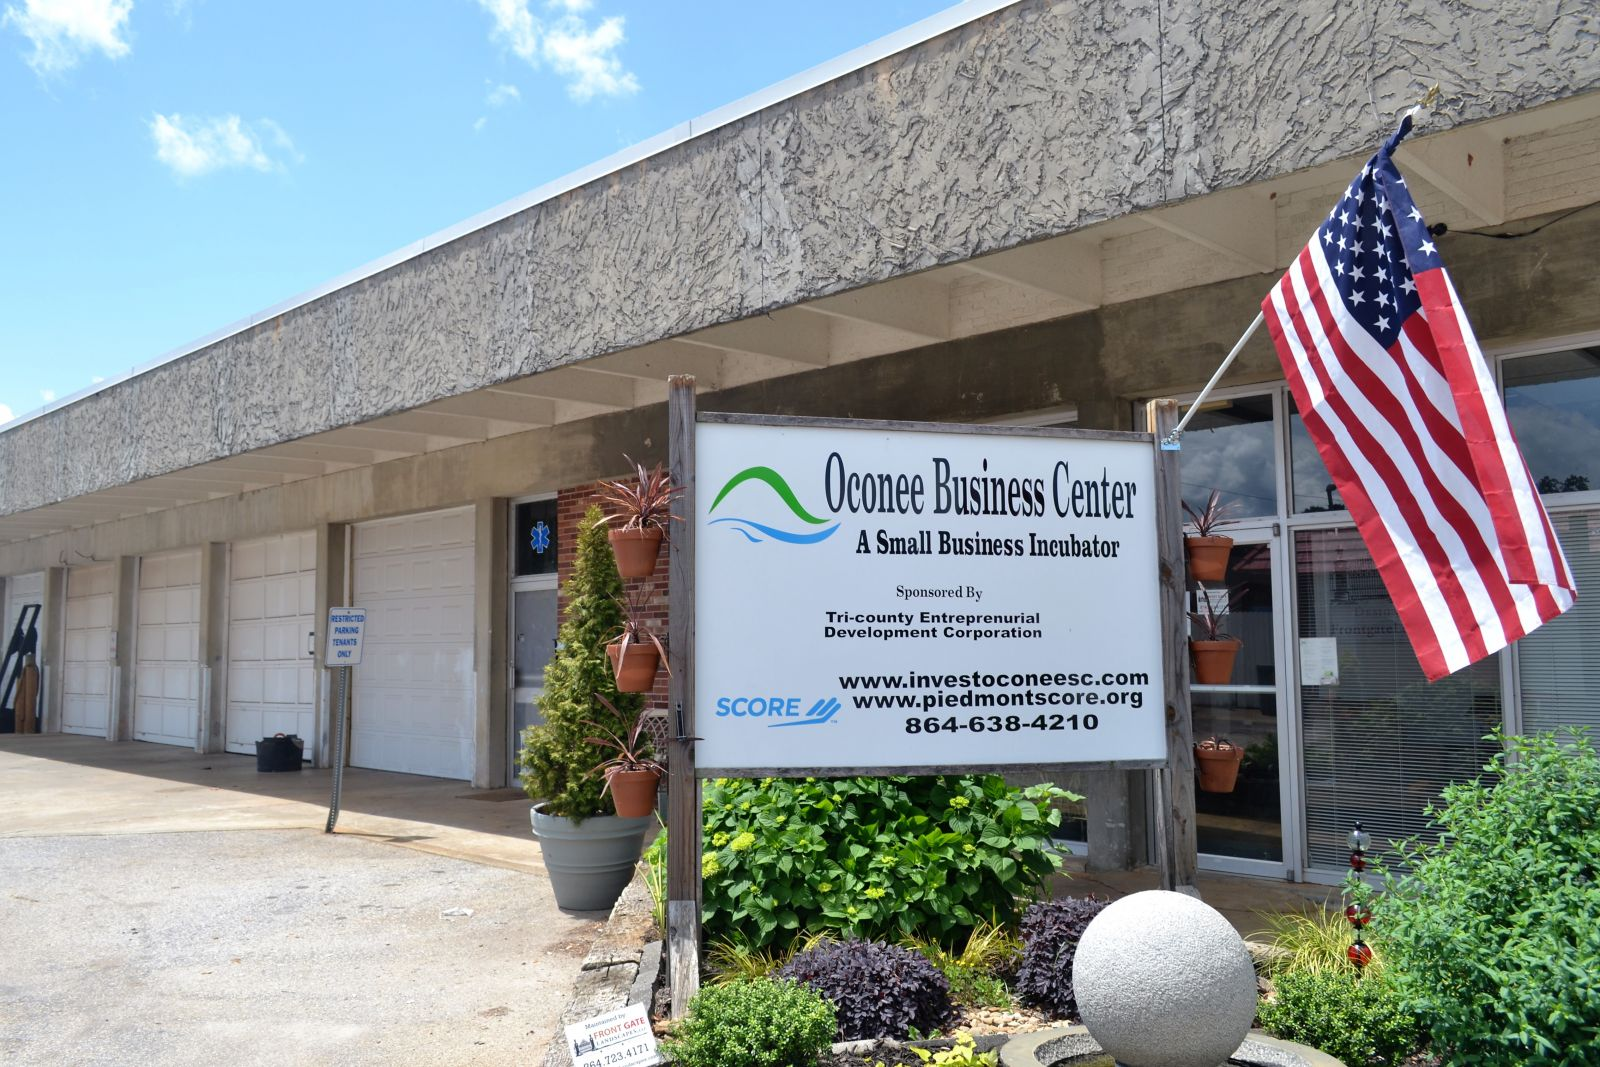 The Oconee Business Center is funded by the county and operated by the Tri-County Entrepreneurial Development Corp. and the Piedmont chapter of Score, a mentoring arm of the U.S. Small Business Administration. (Photo/Teresa Cutlip)